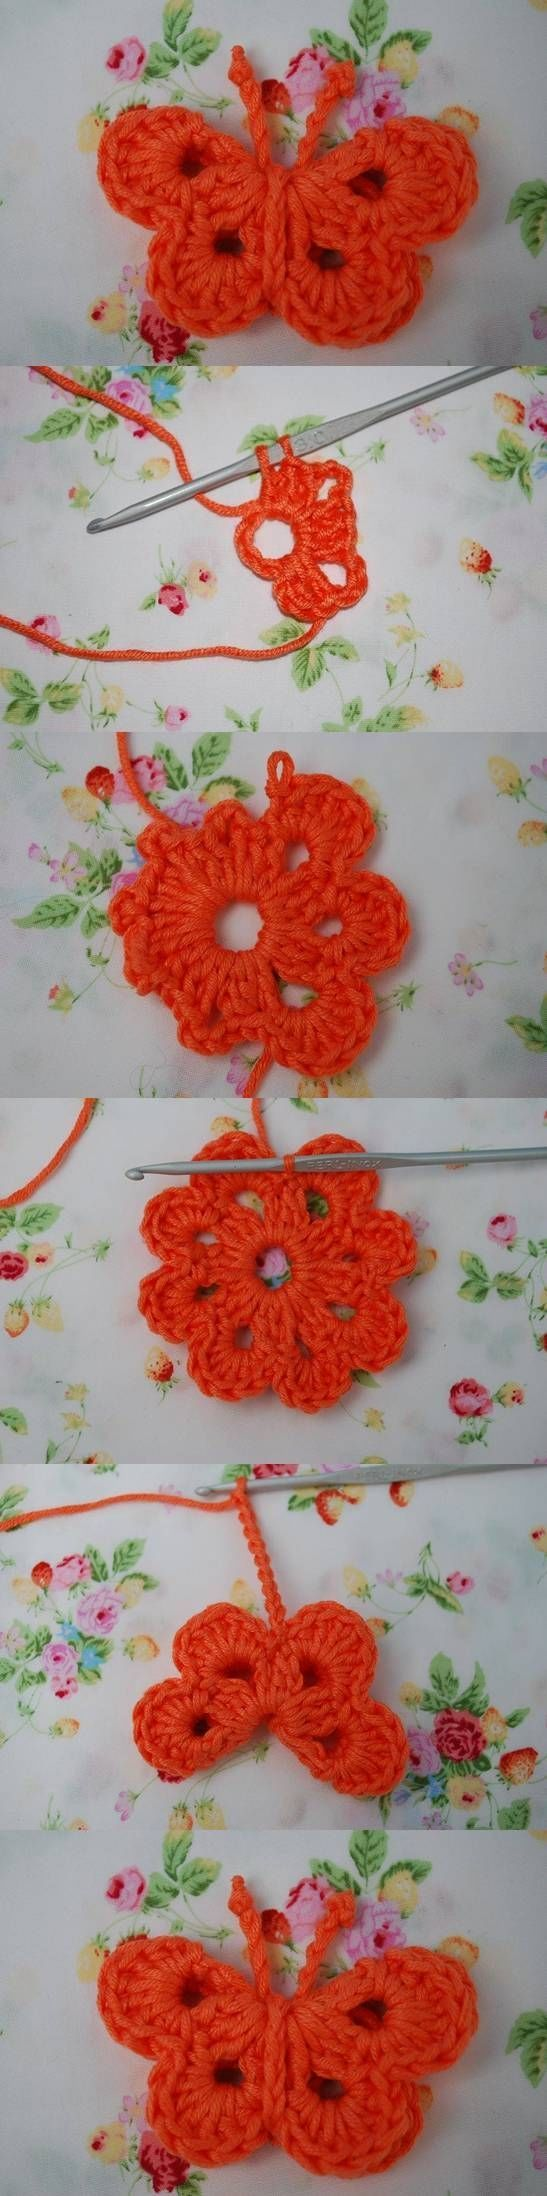 DIY Crochet Butterfly Pictures, Photos, and Images for Facebook, Tumblr, Pinterest, and Twitter